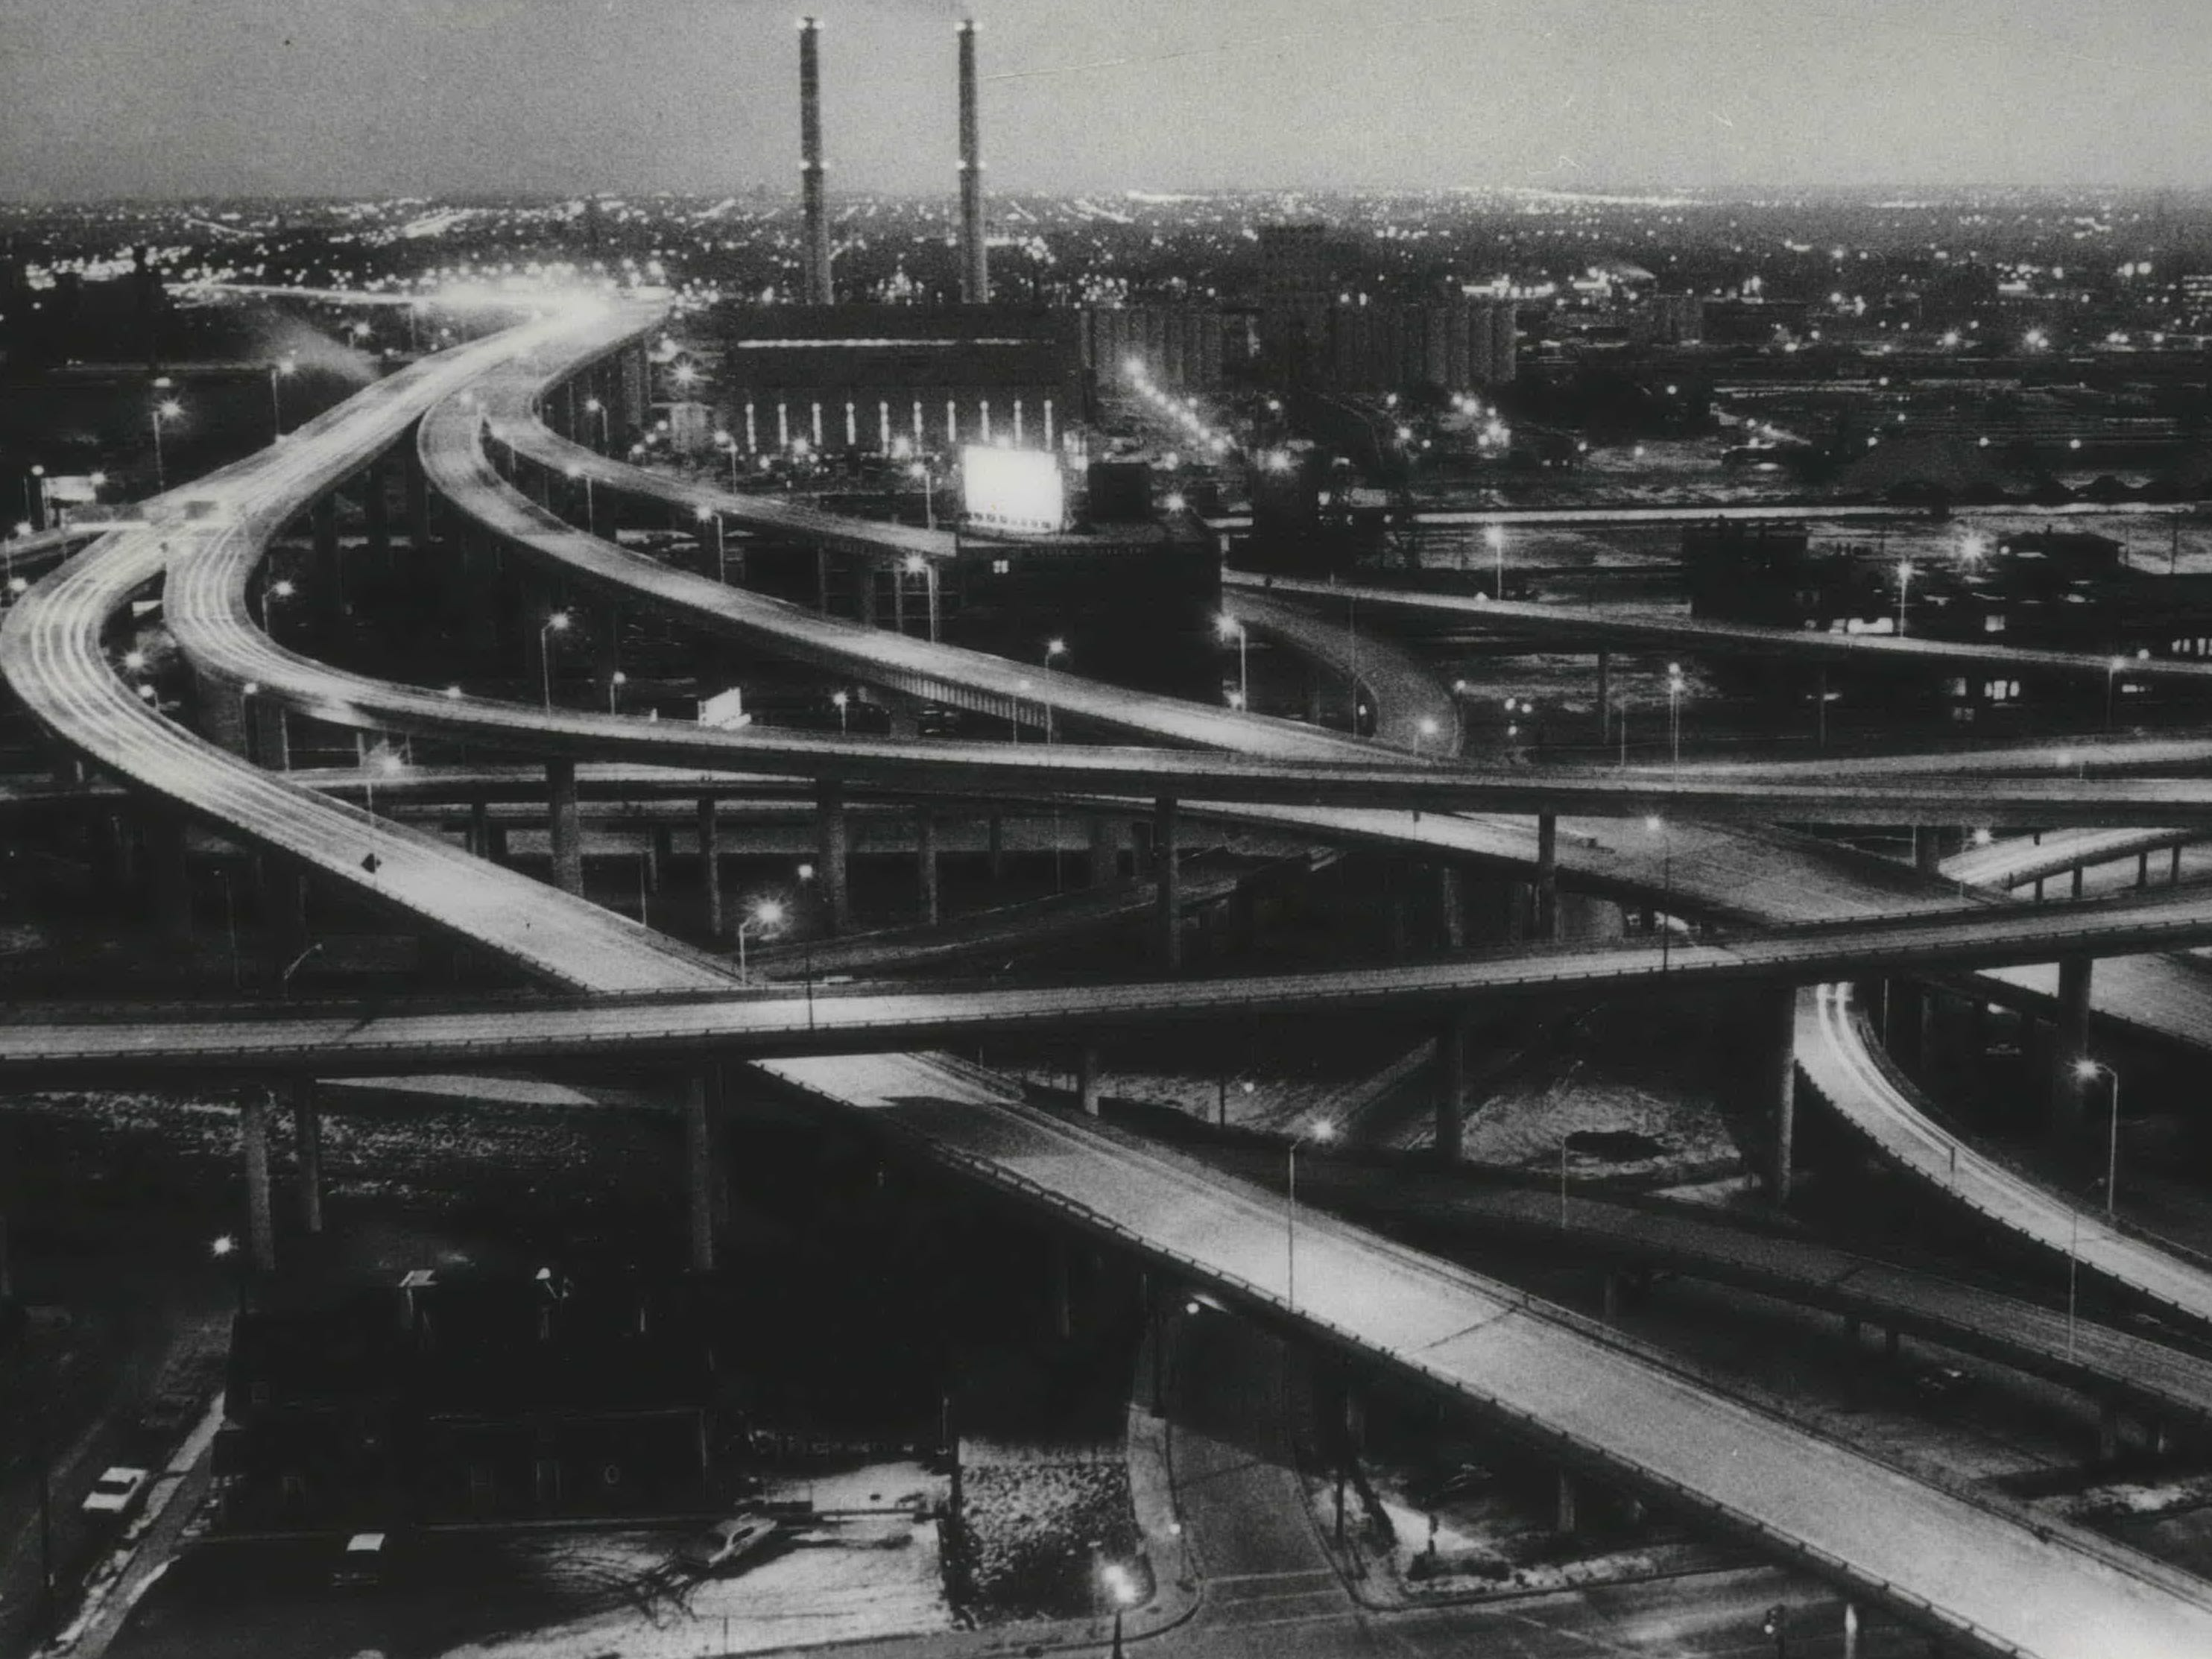 Twinkling lights stretch for miles to the south along the newly opened segments of Milwaukee's freeway system on Dec. 24, 1968. This picture, taken from the top of the YMCA building, 915 W. Wisconsin Ave., shows the Marquette Interchange and the Menomonee Valley High-Rise Bridge. The freeway sections opened to the public Dec. 23, 1968; this photo was published in the Dec. 25, 1968, Milwaukee Sentinel.